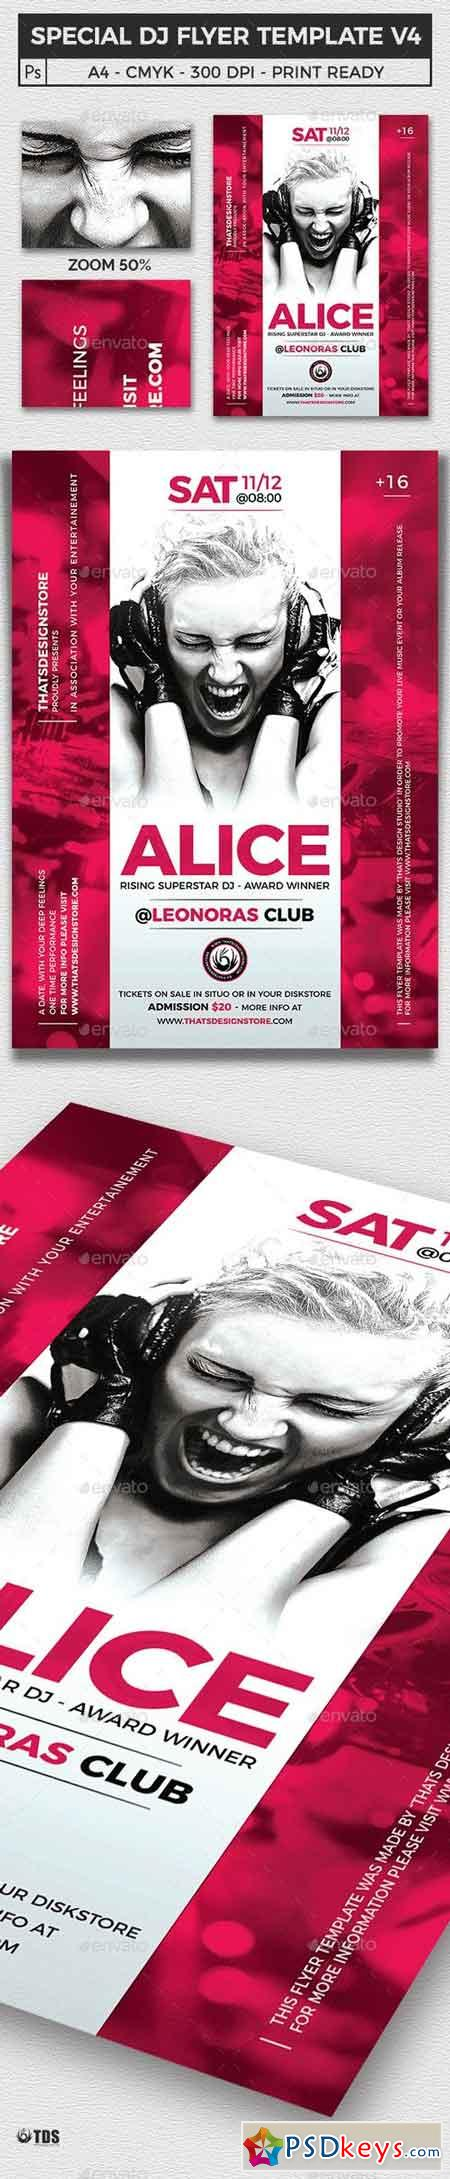 Special Dj Flyer Template V4 16594231